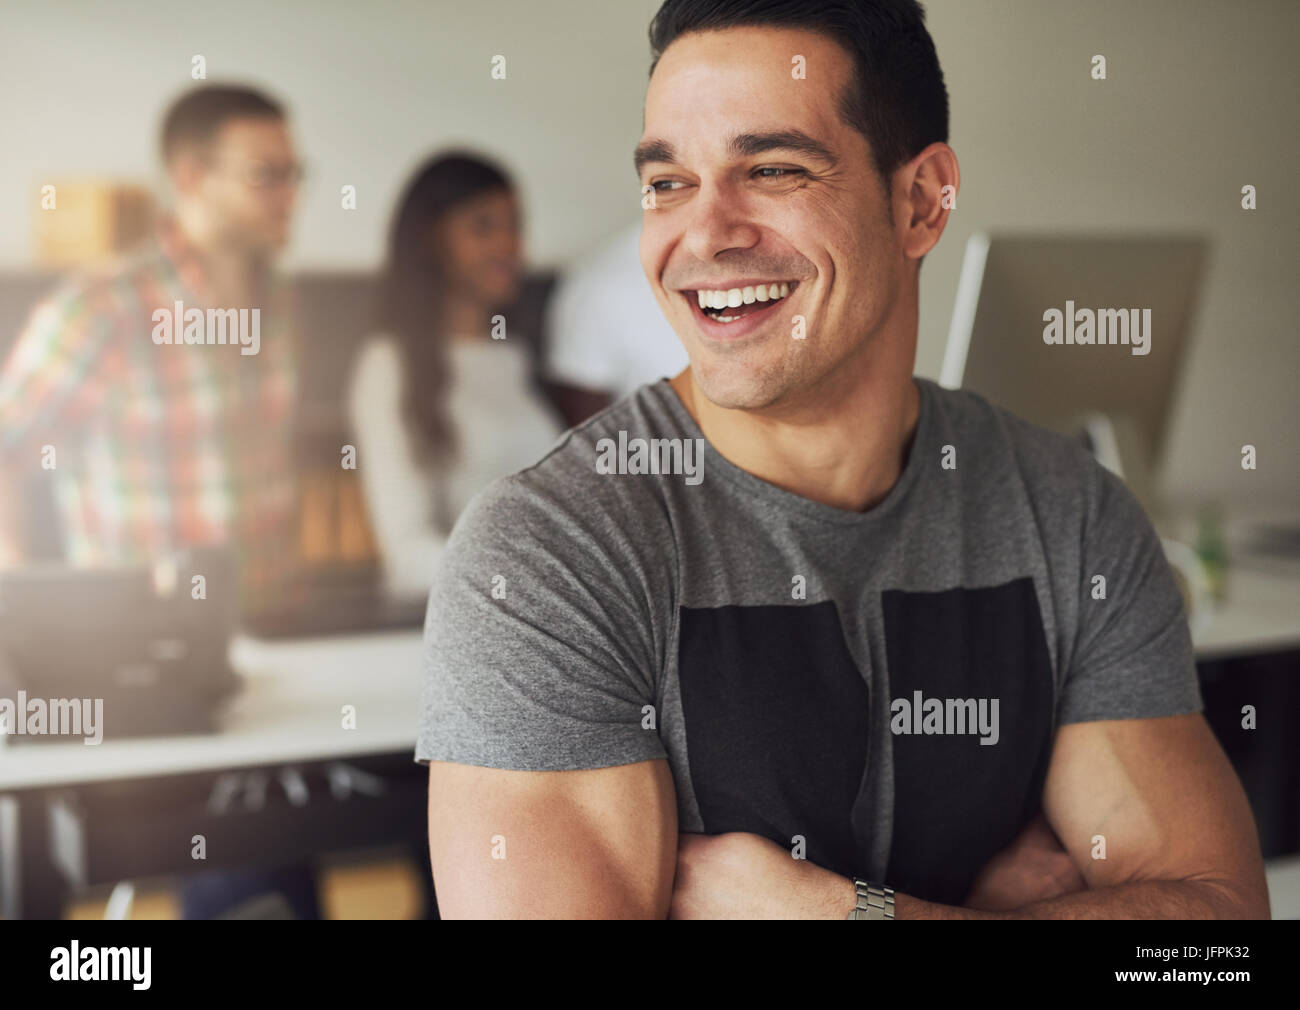 Smiling young confident man with arms crossed standing and looking away in the office. - Stock Image